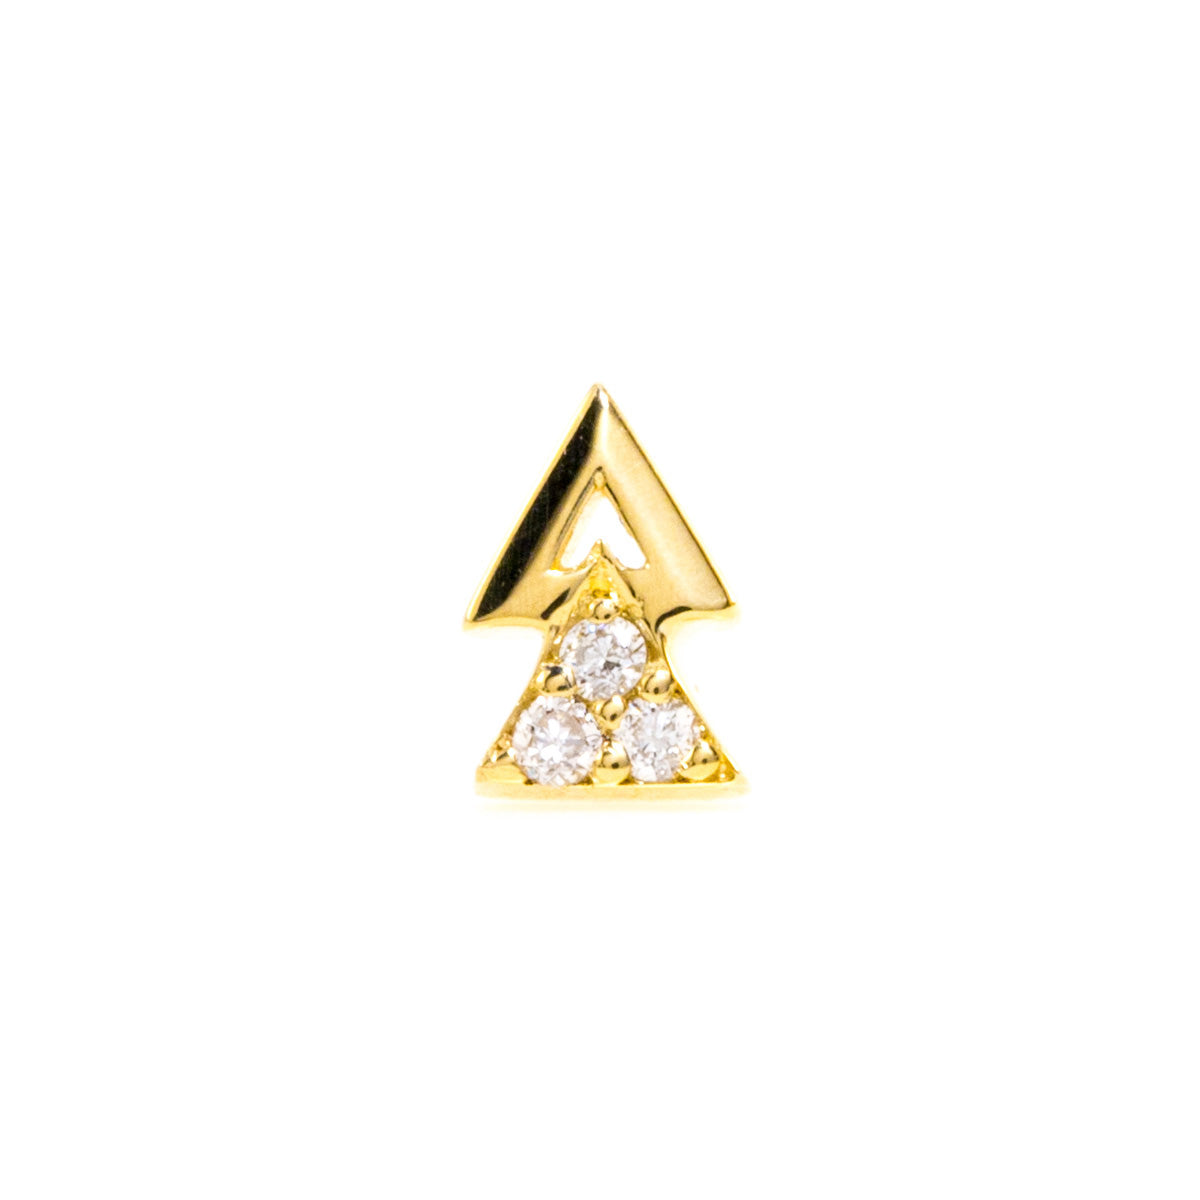 Double Triangle Earrings with Diamond - 14K Yellow Gold